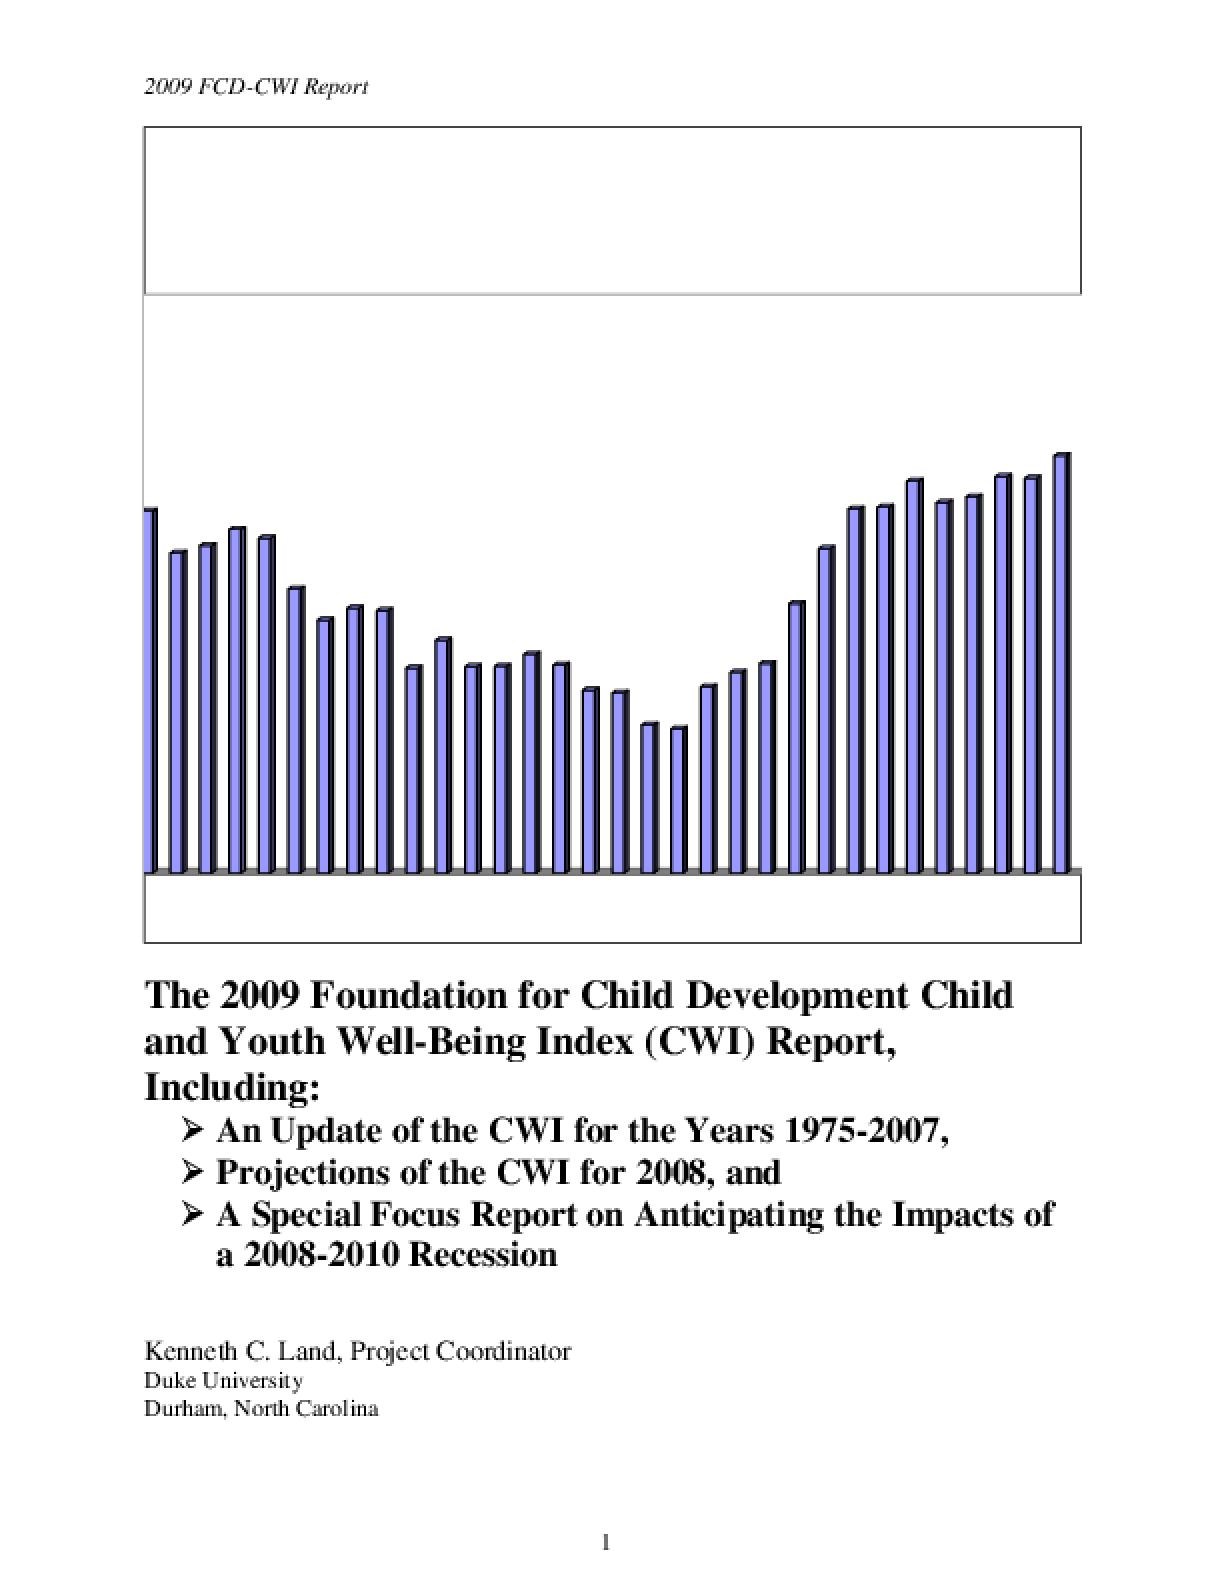 2009 Child and Youth Well-Being Index